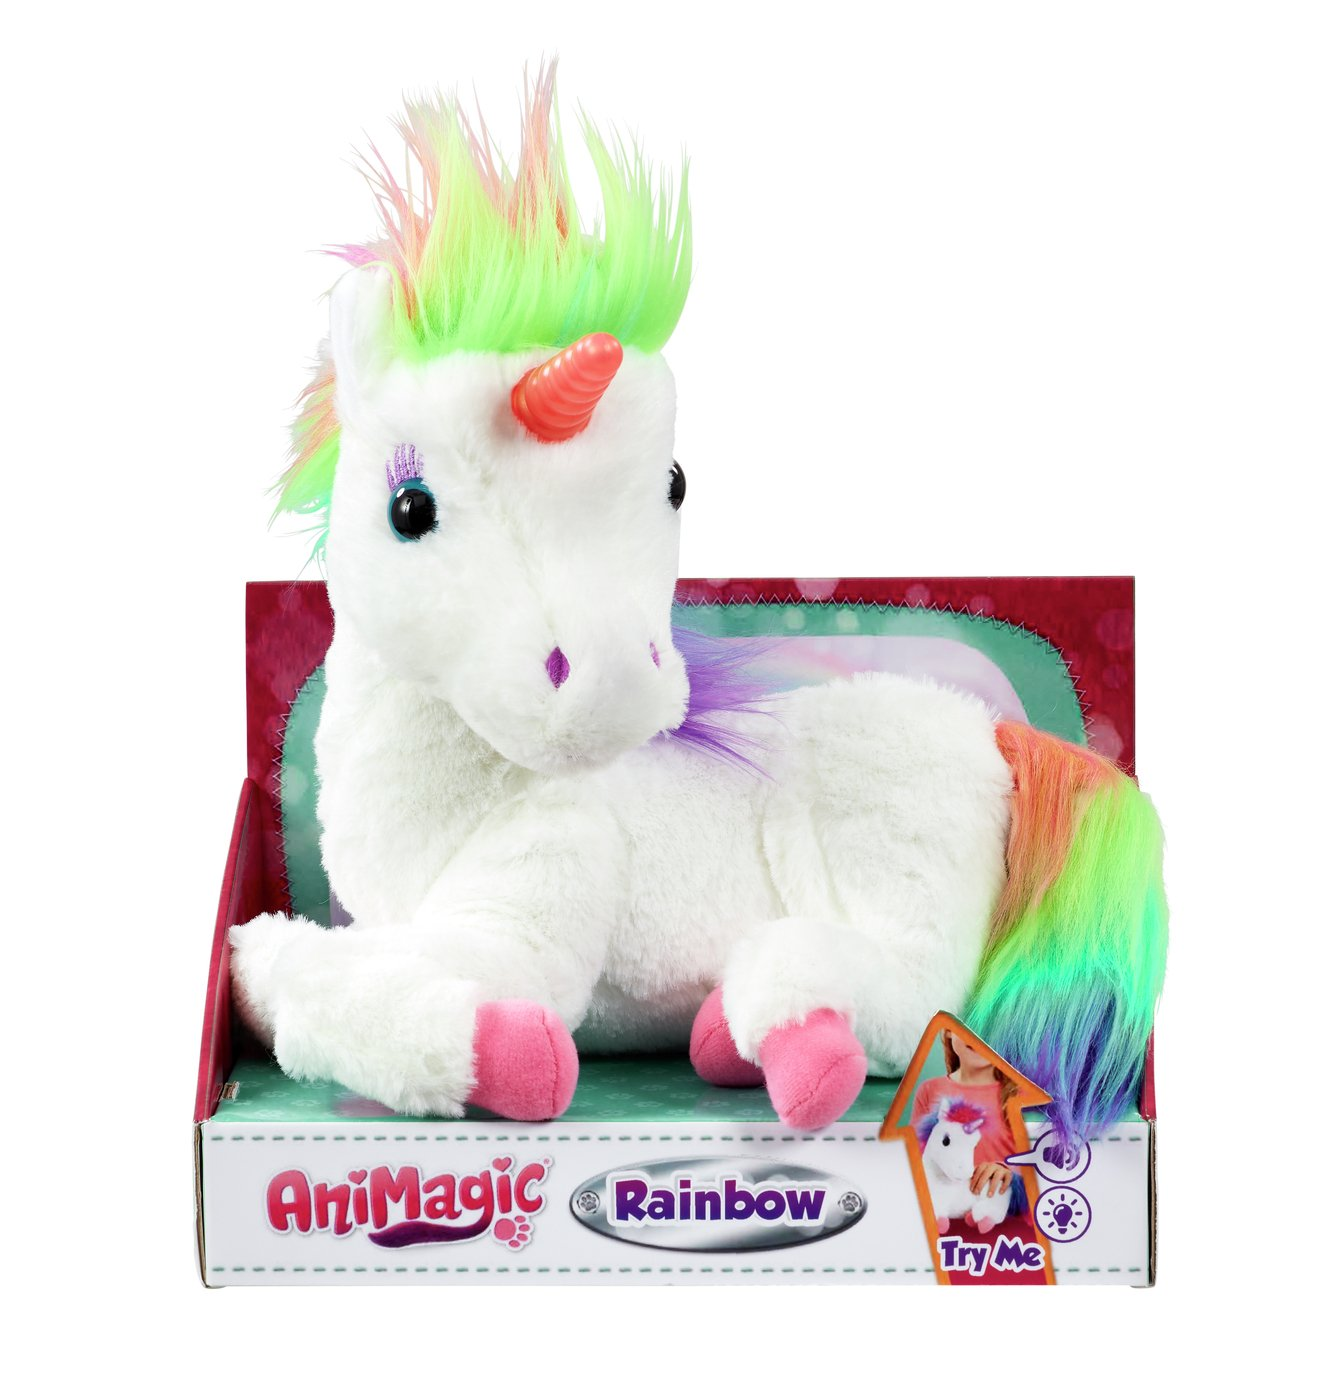 Image of AniMagic Rainbow My Glowing Unicorn